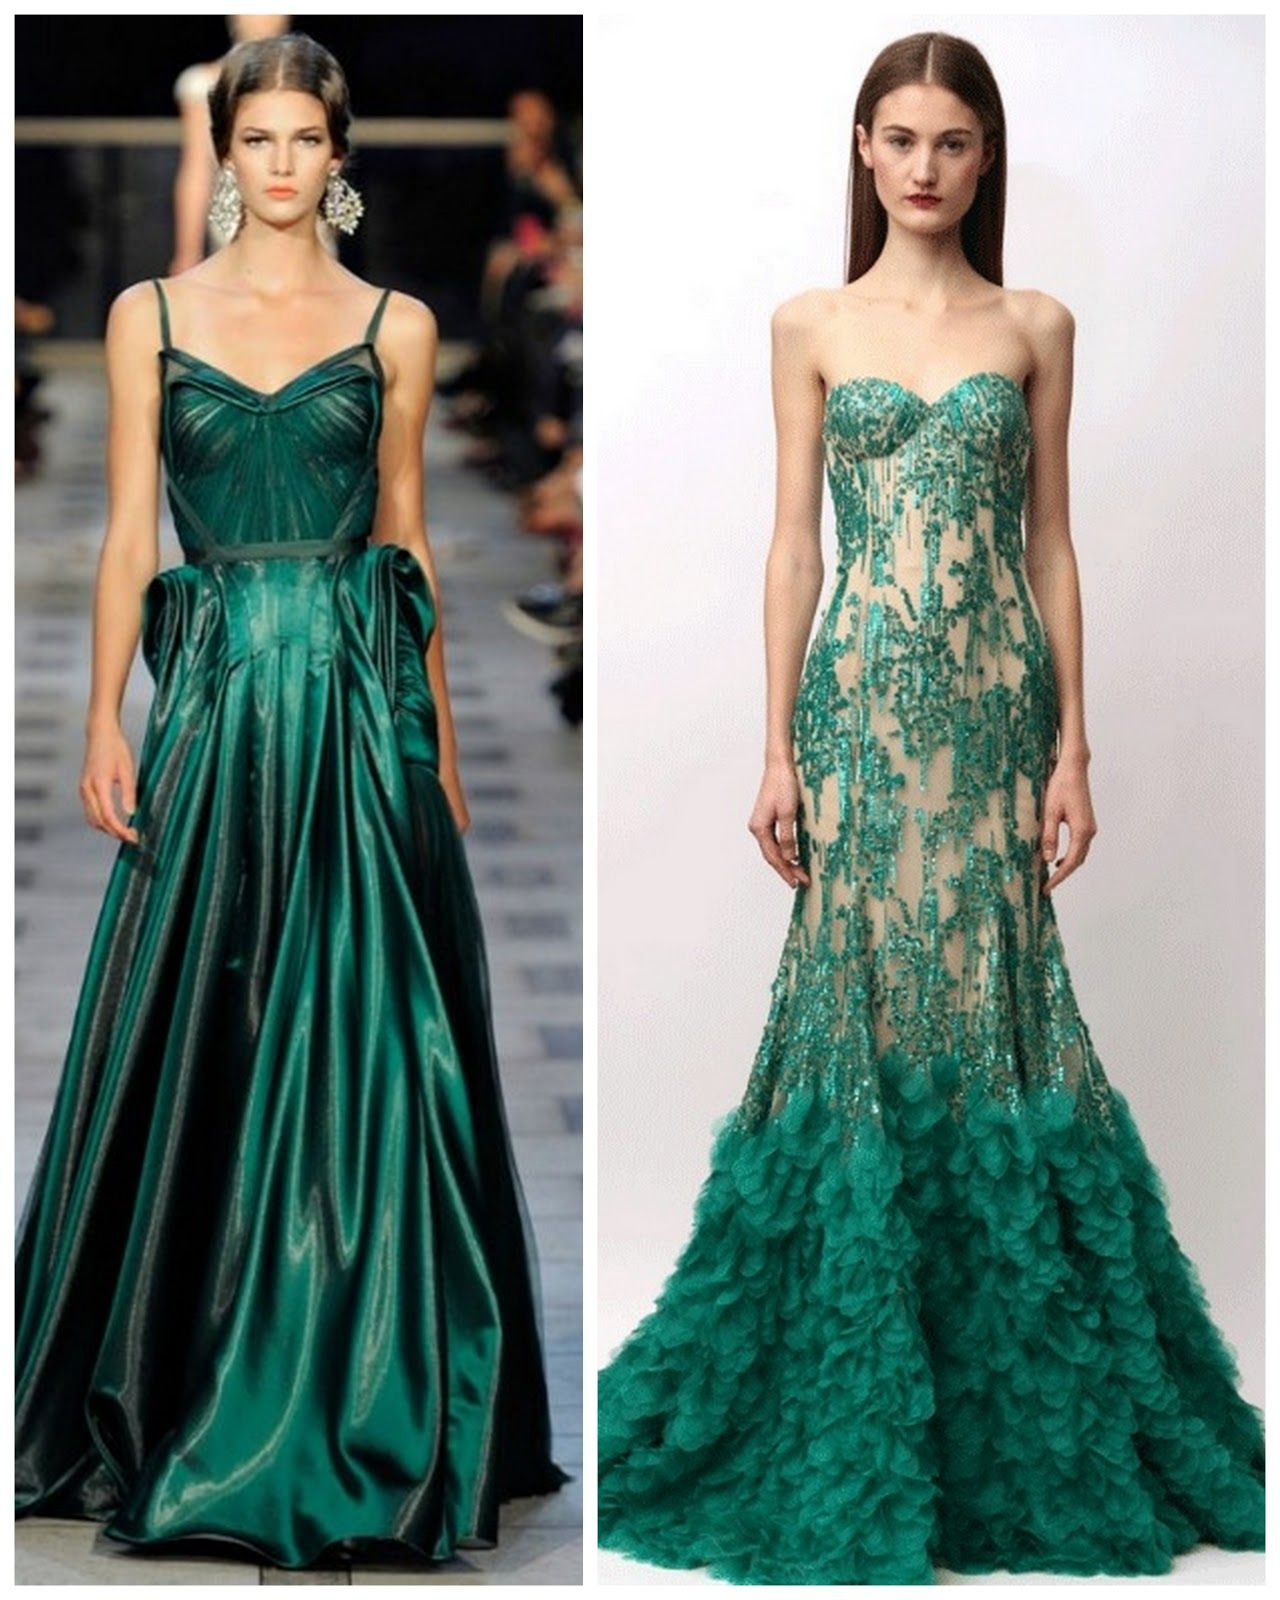 Bottle green prom dress  emerald green wedding dress  OH VERA If you still like green